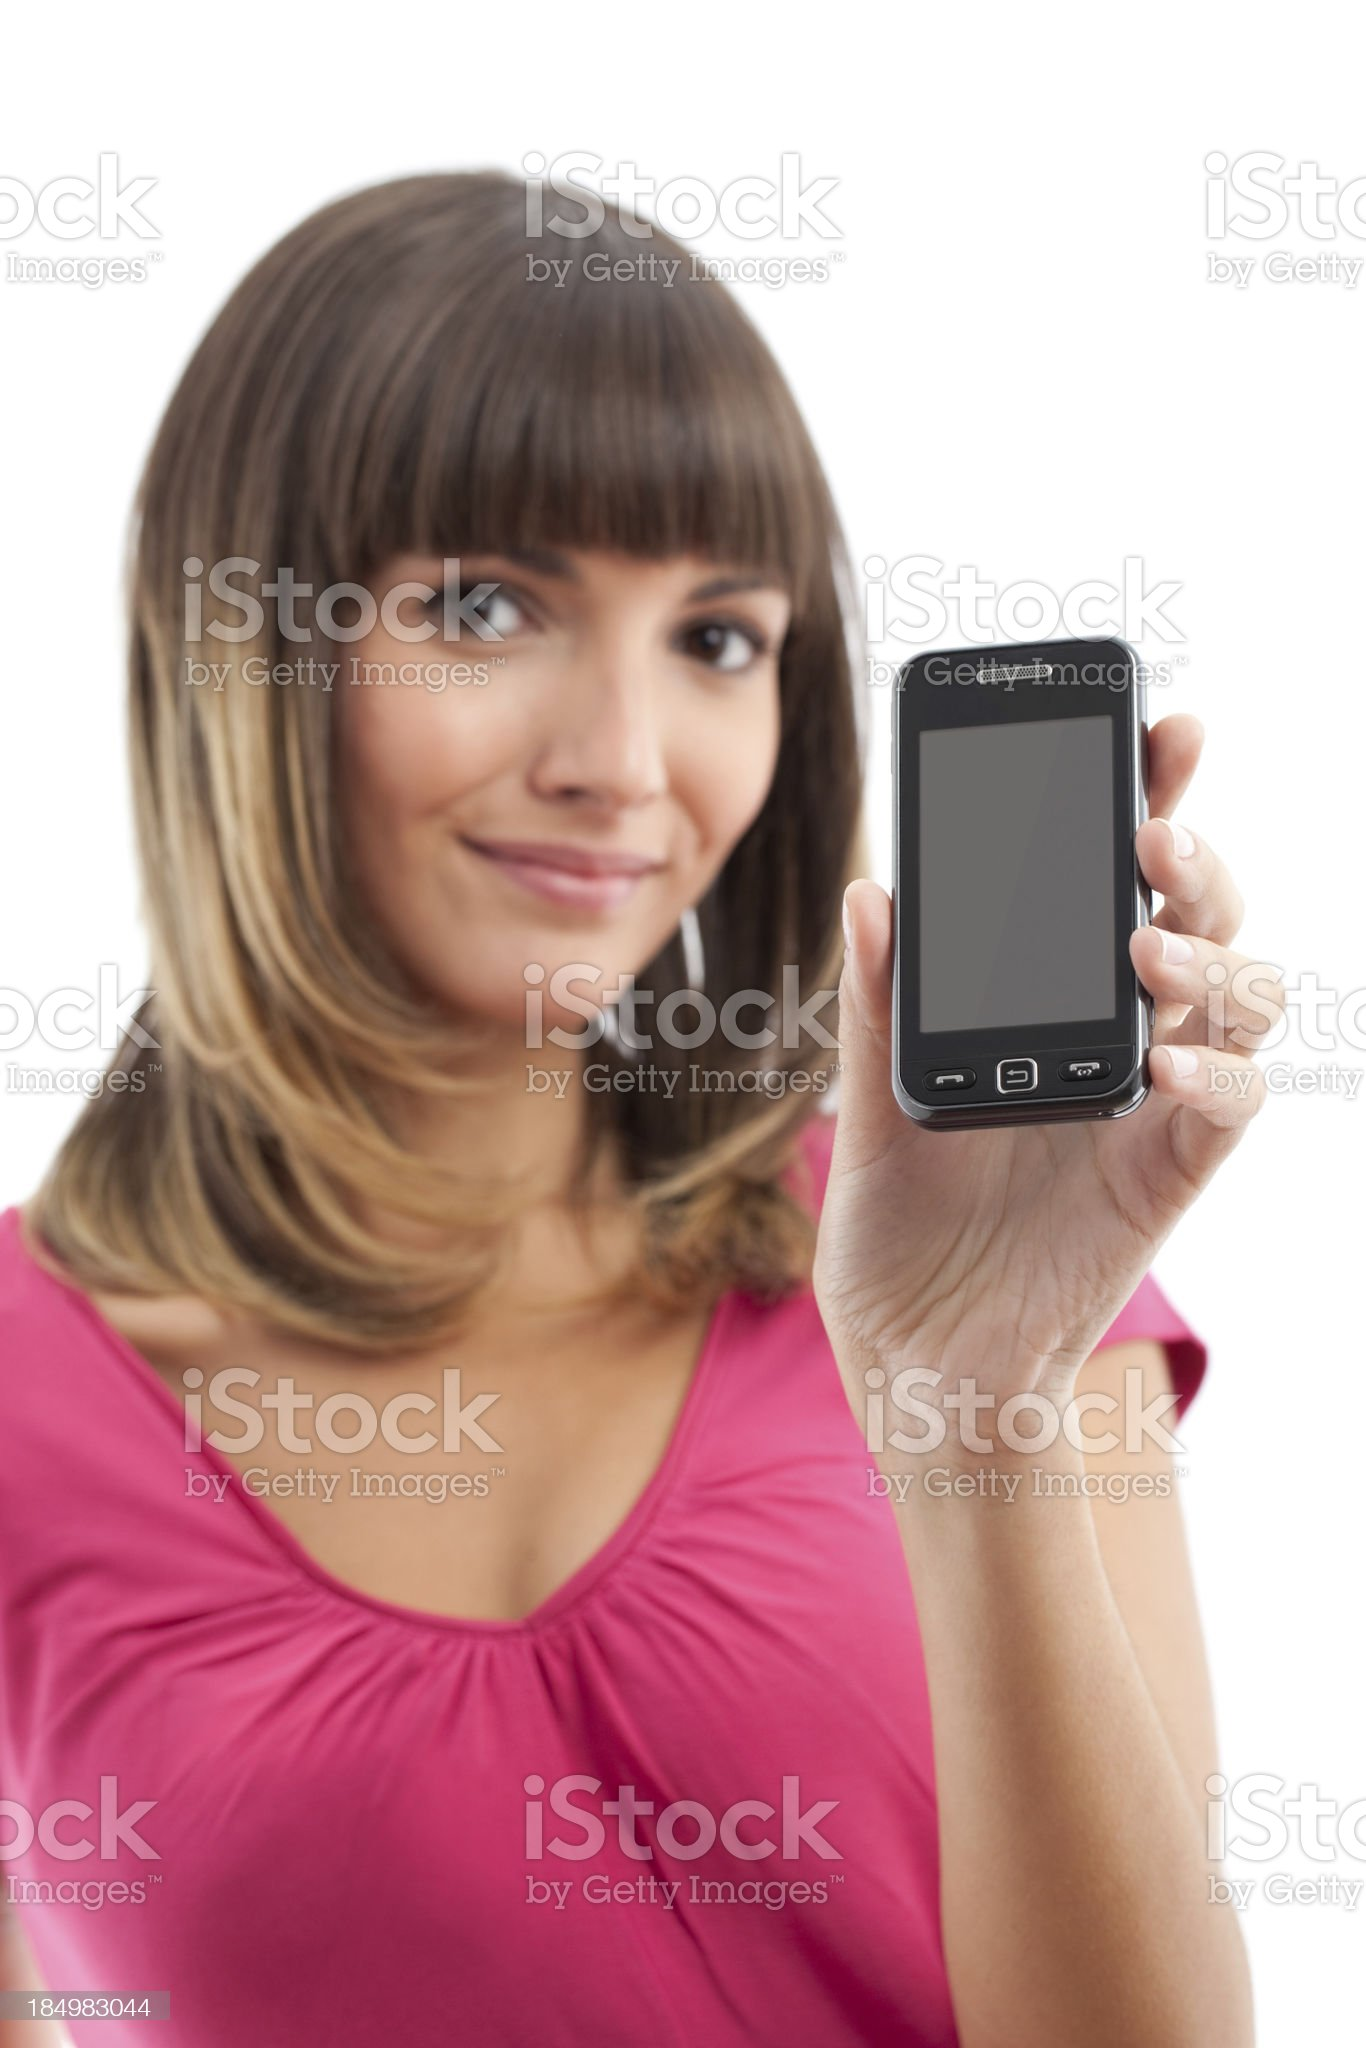 Young Woman with a Smart Phone royalty-free stock photo